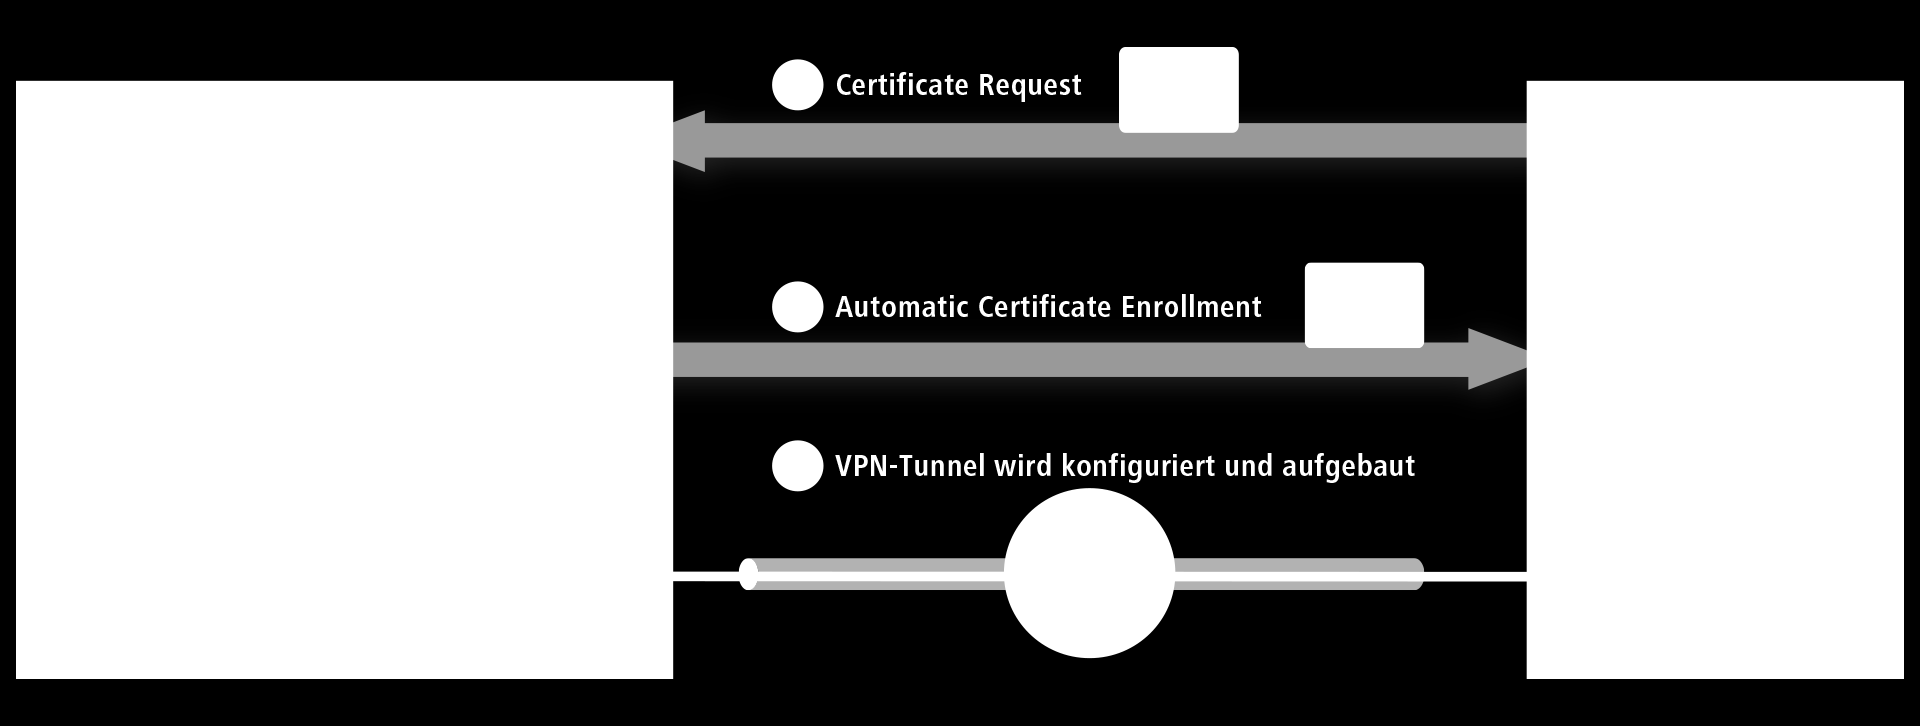 Die neuen Highlight-Features LANCOM Smart Certificate: Anwendungsbeispiel Über SCEP (Simple Certificate Enrollment